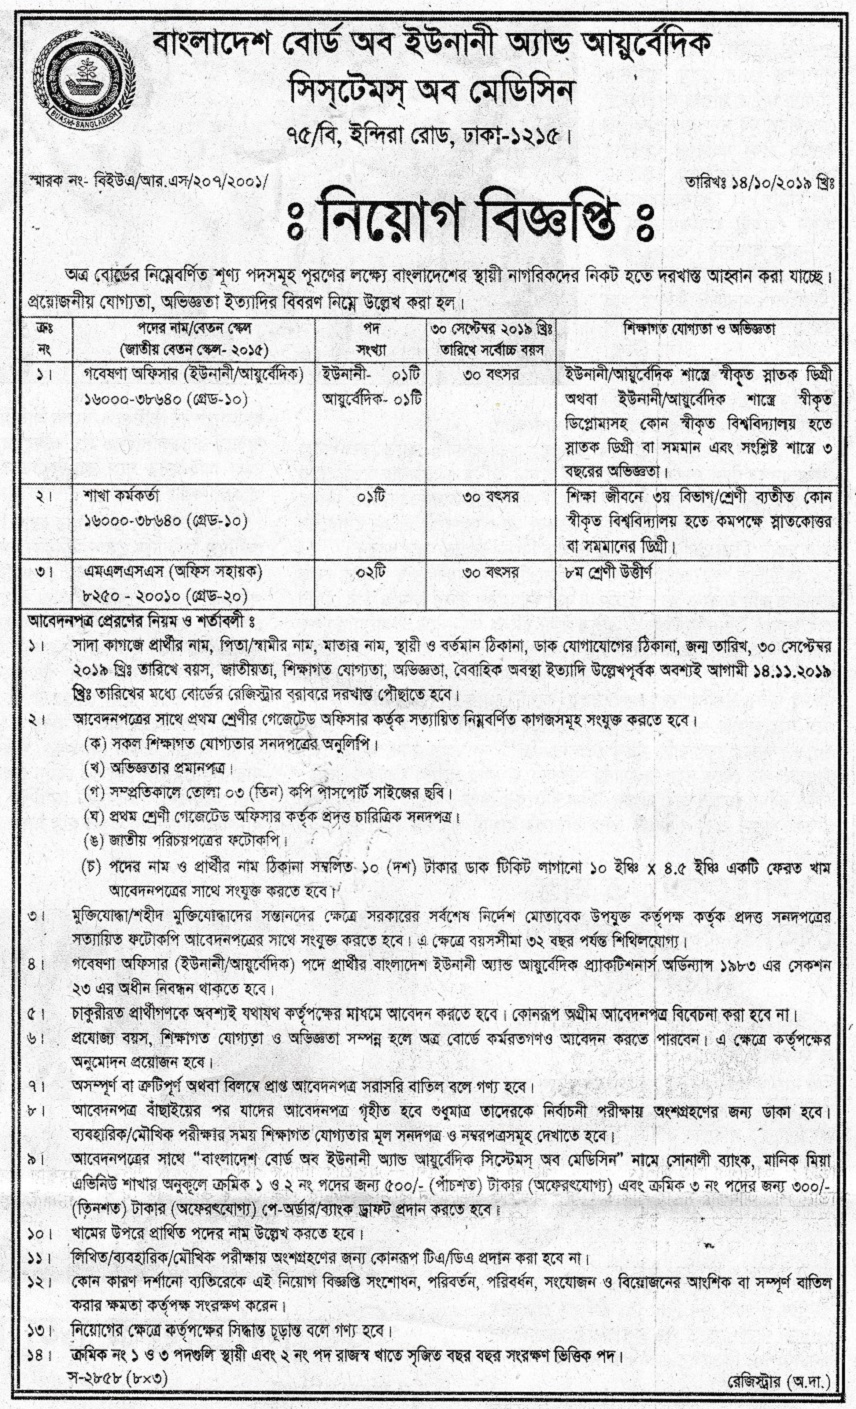 Bangladesh Board of Unani and Ayurvedic Systems of Medicine Job Circular 2019